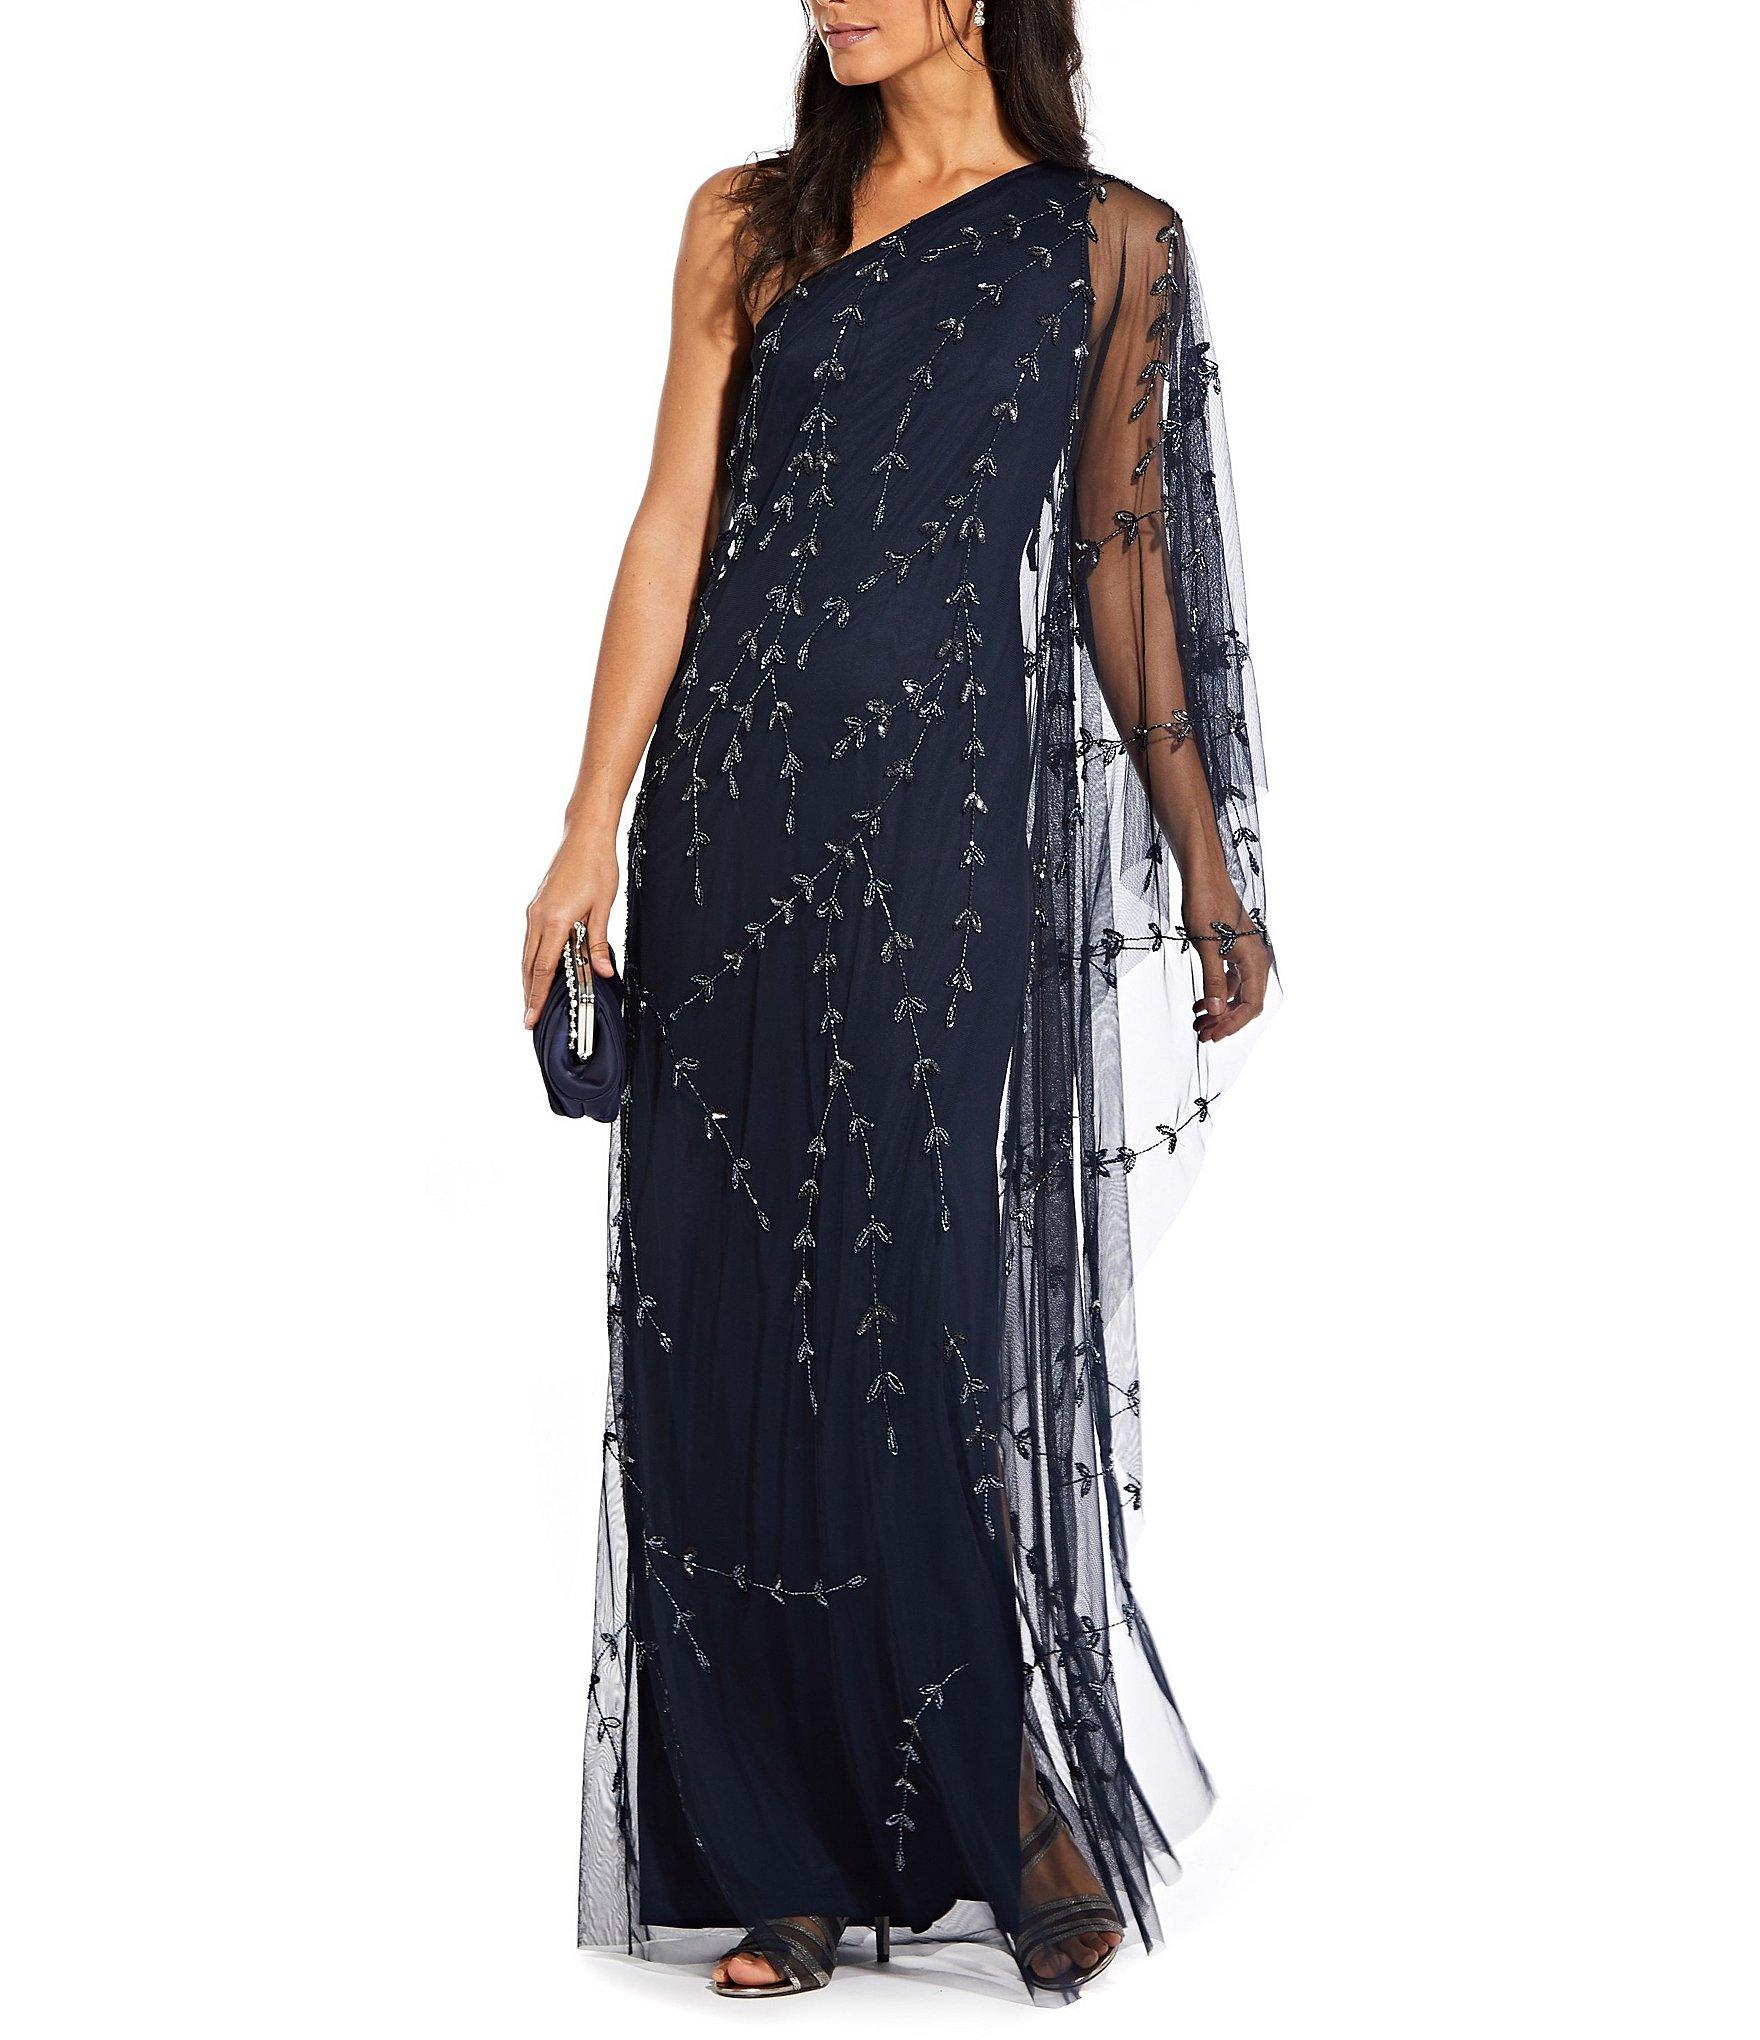 c6576ea173645 Lyst - Adrianna Papell Plus Size One Shoulder Long Beaded Gown in Blue